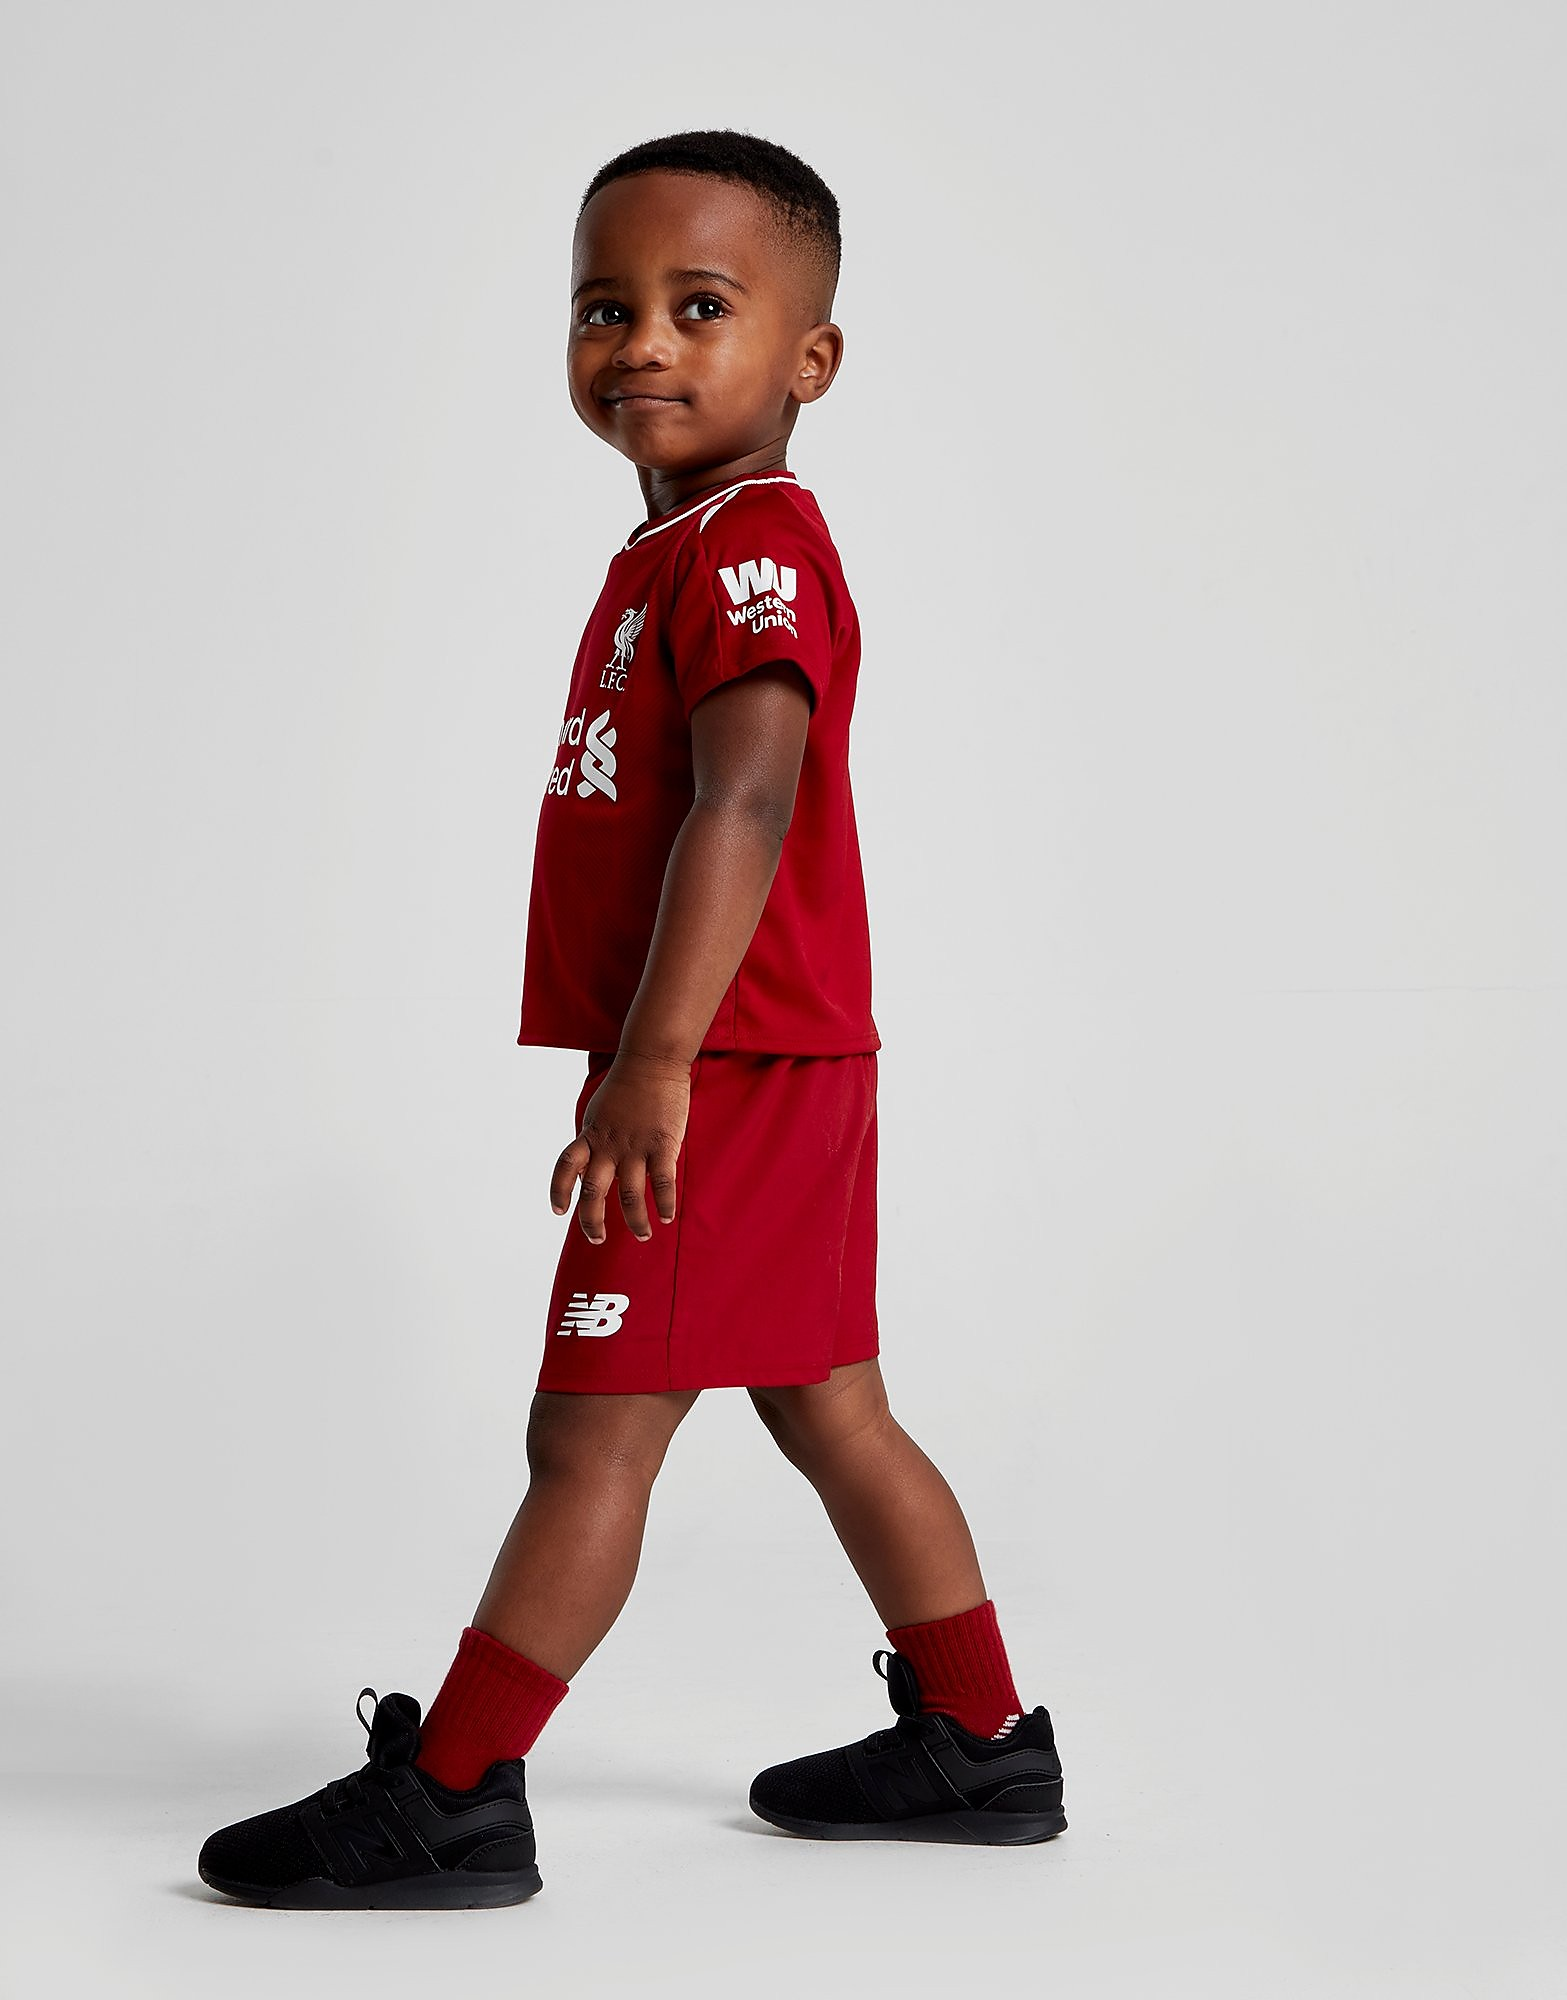 New Balance Liverpool FC 2018 Home Kit Baby's PRE ORDER